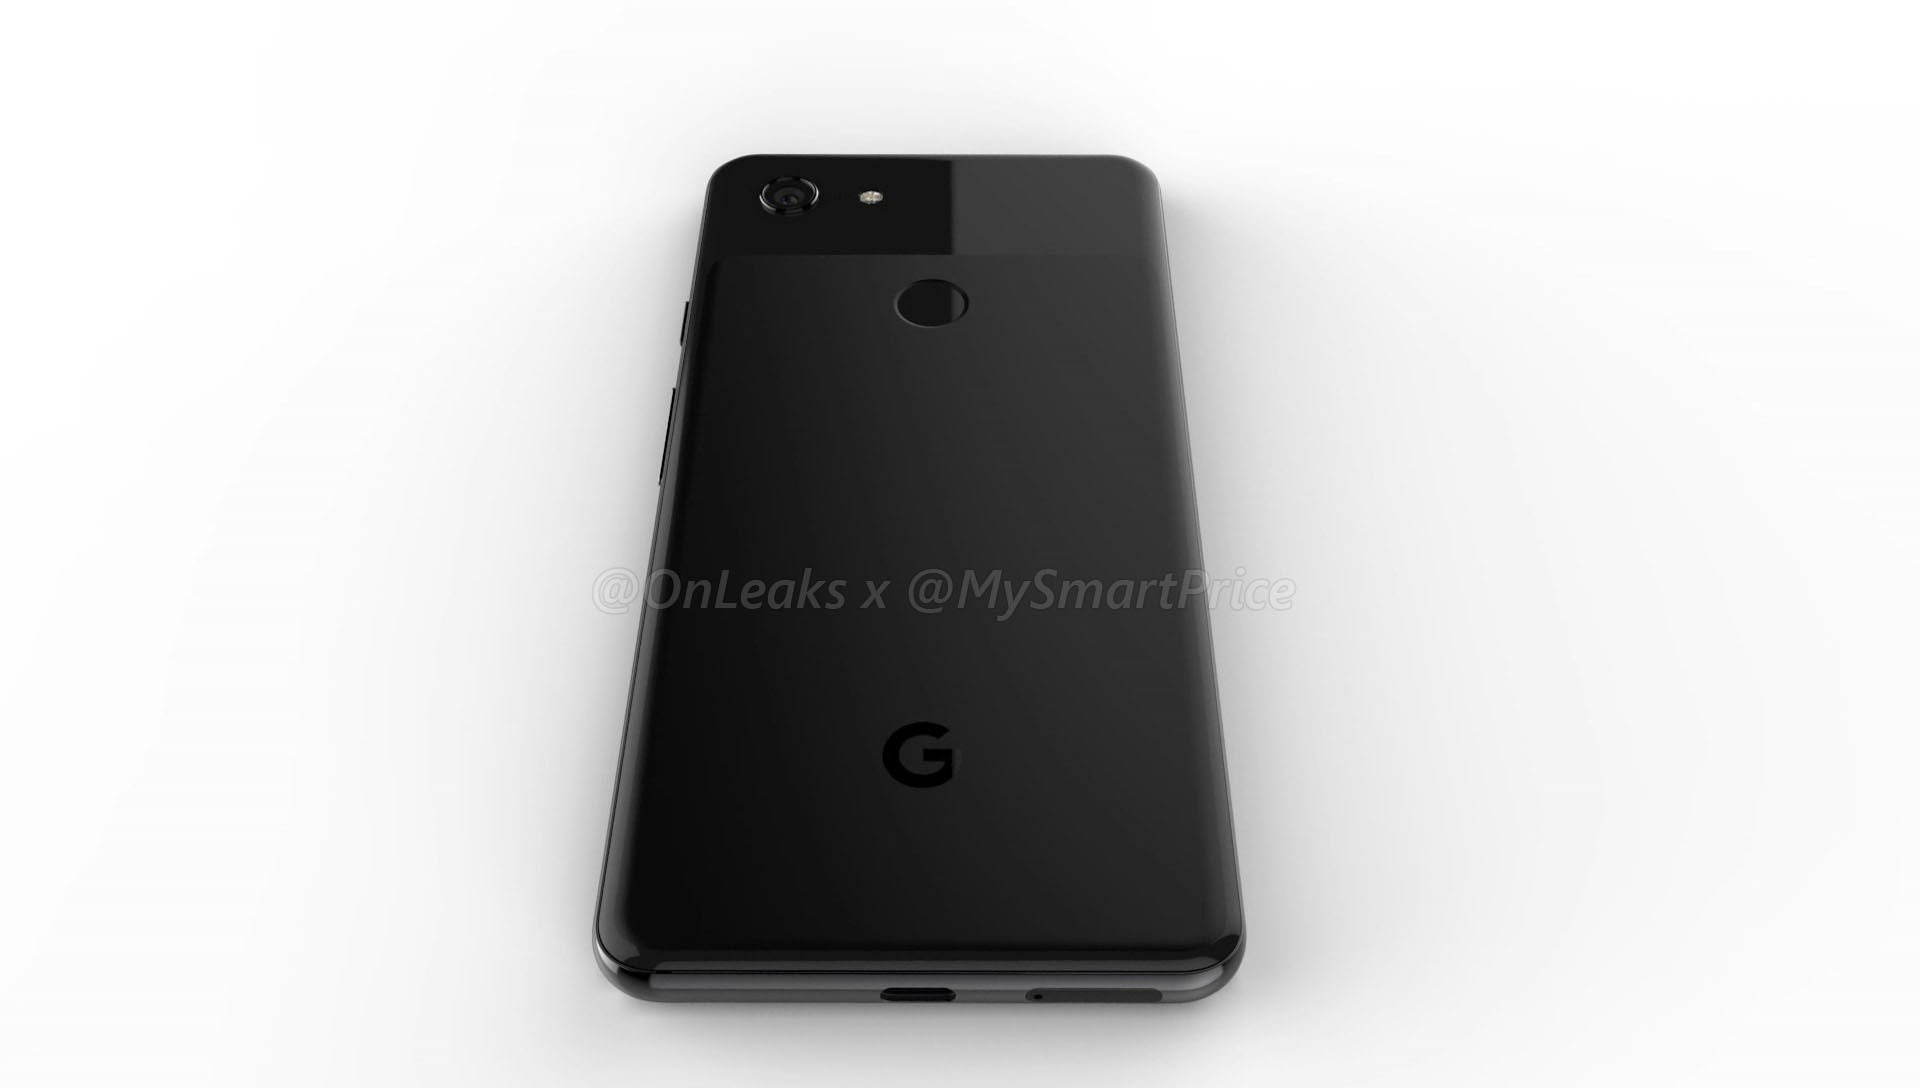 Google Pixel 3 & Pixel 3 XL - Here's our best look at the design 22